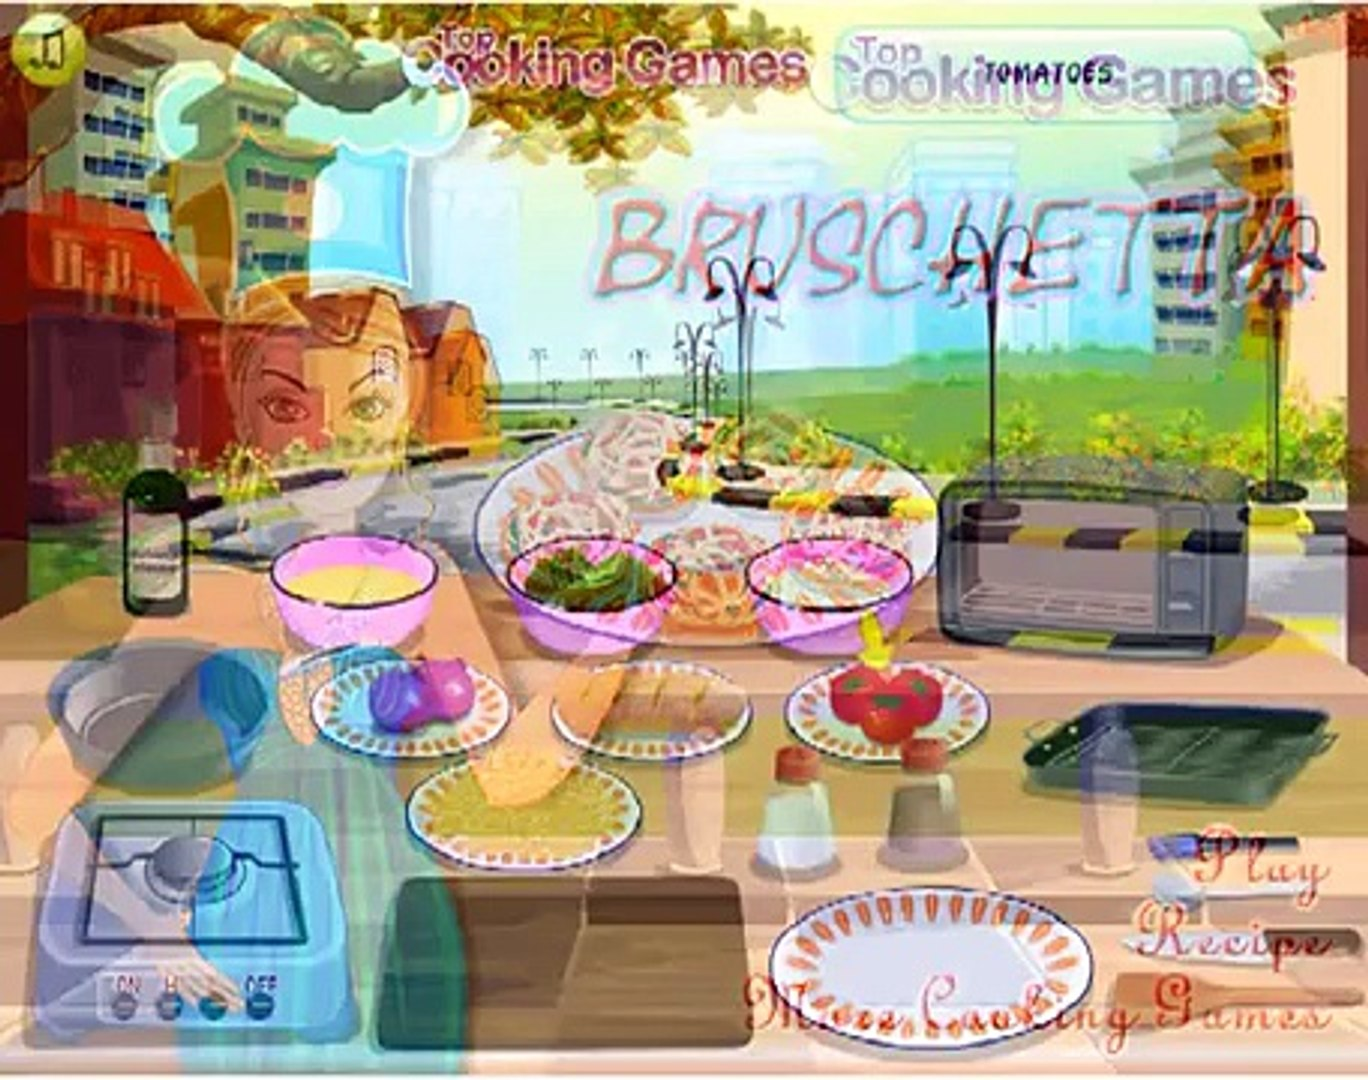 Bruschetta Games-Cooking Games-Girl Games